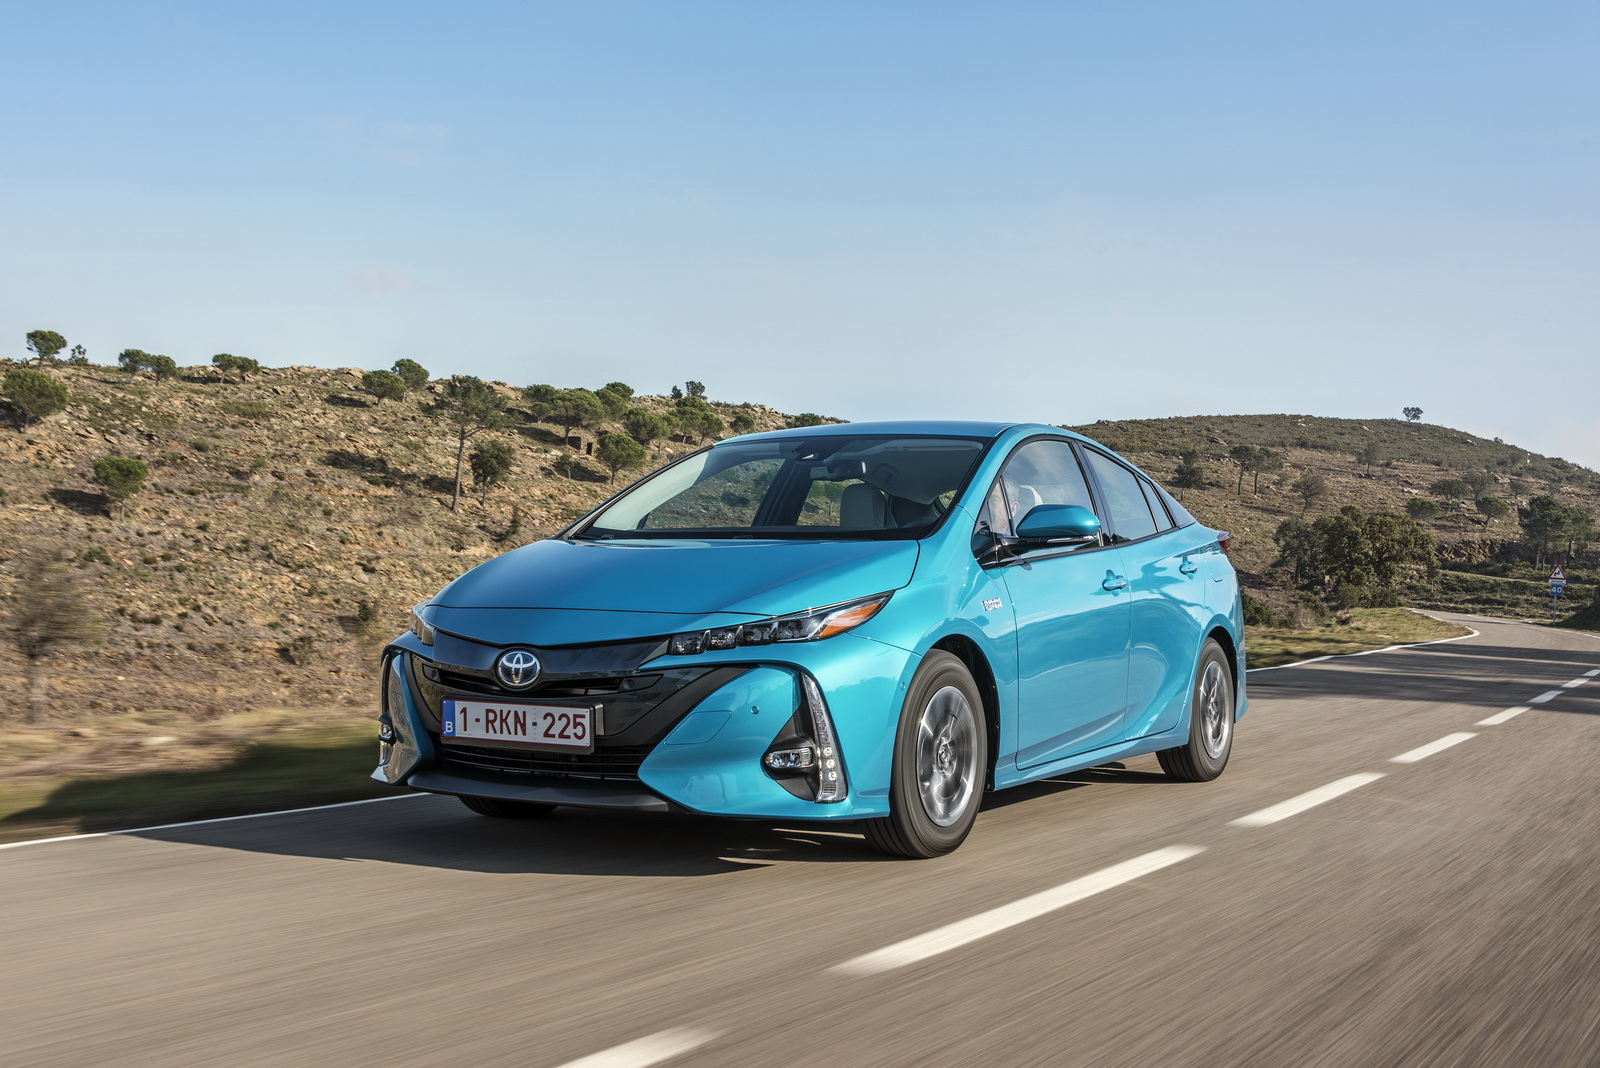 toyota details new prius plug in hybrid for european customers 100 pics carscoops. Black Bedroom Furniture Sets. Home Design Ideas